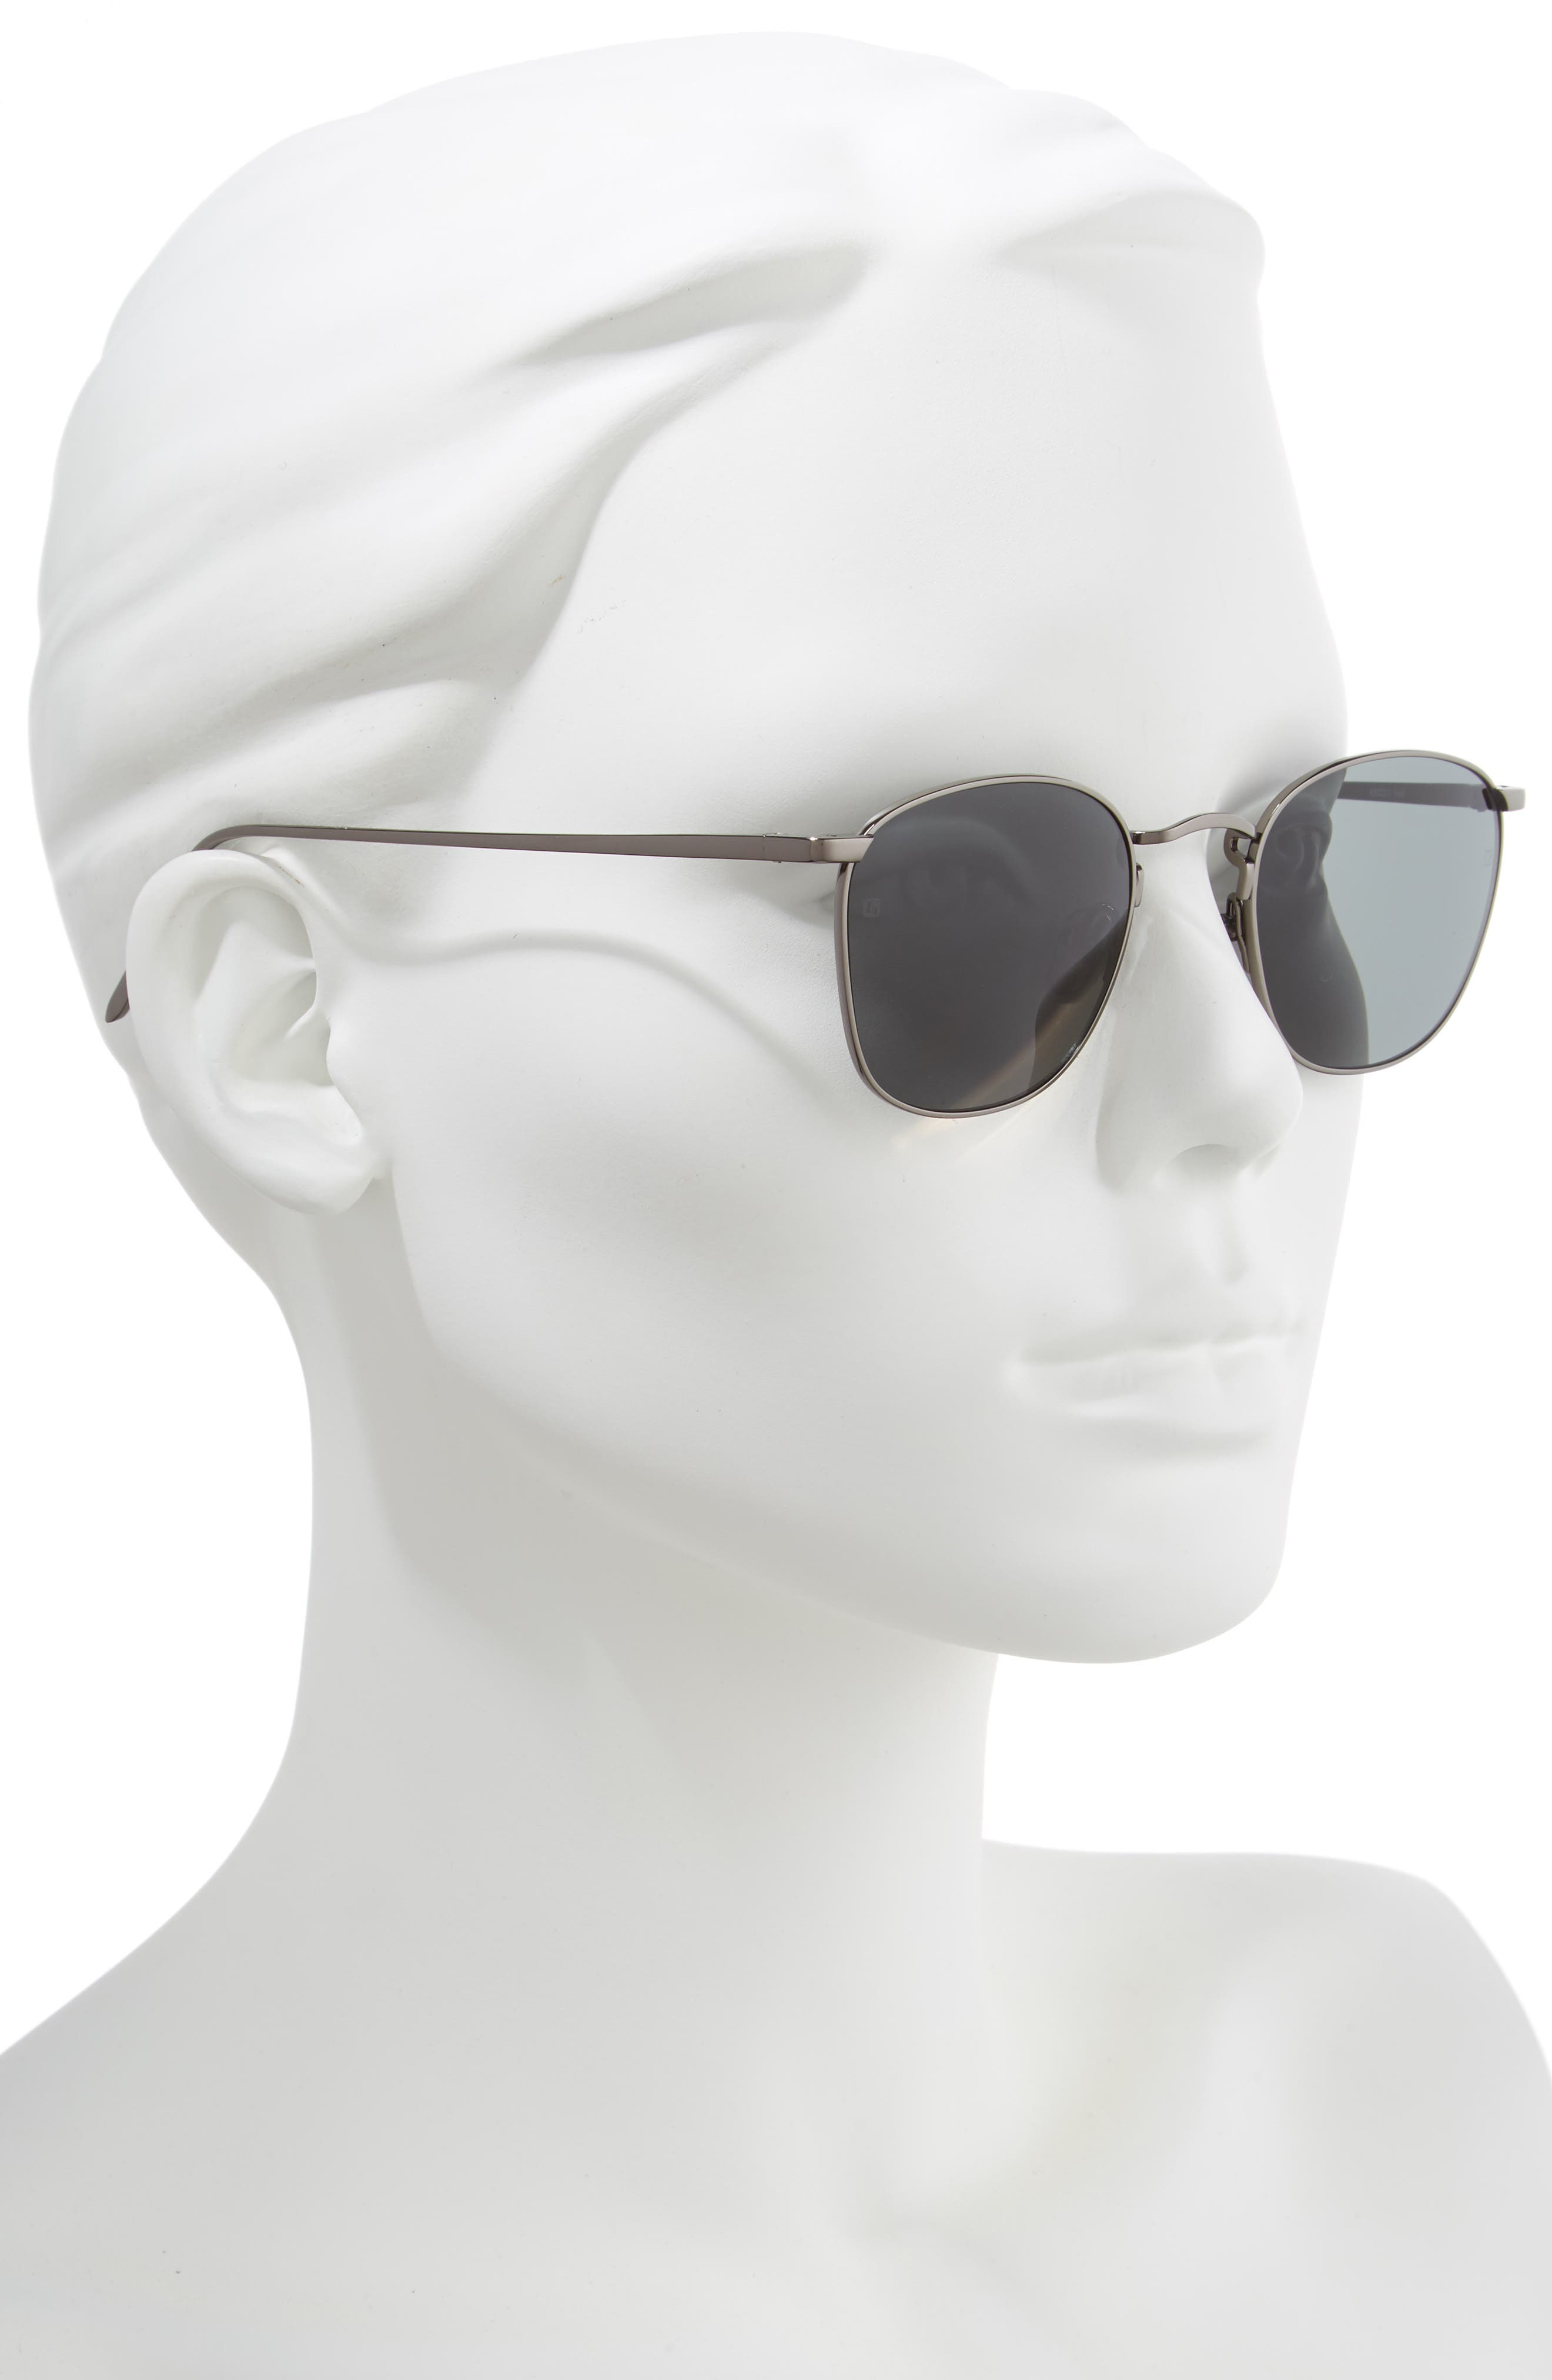 bb12c098c55f3 Linda Farrow Sunglasses for Women